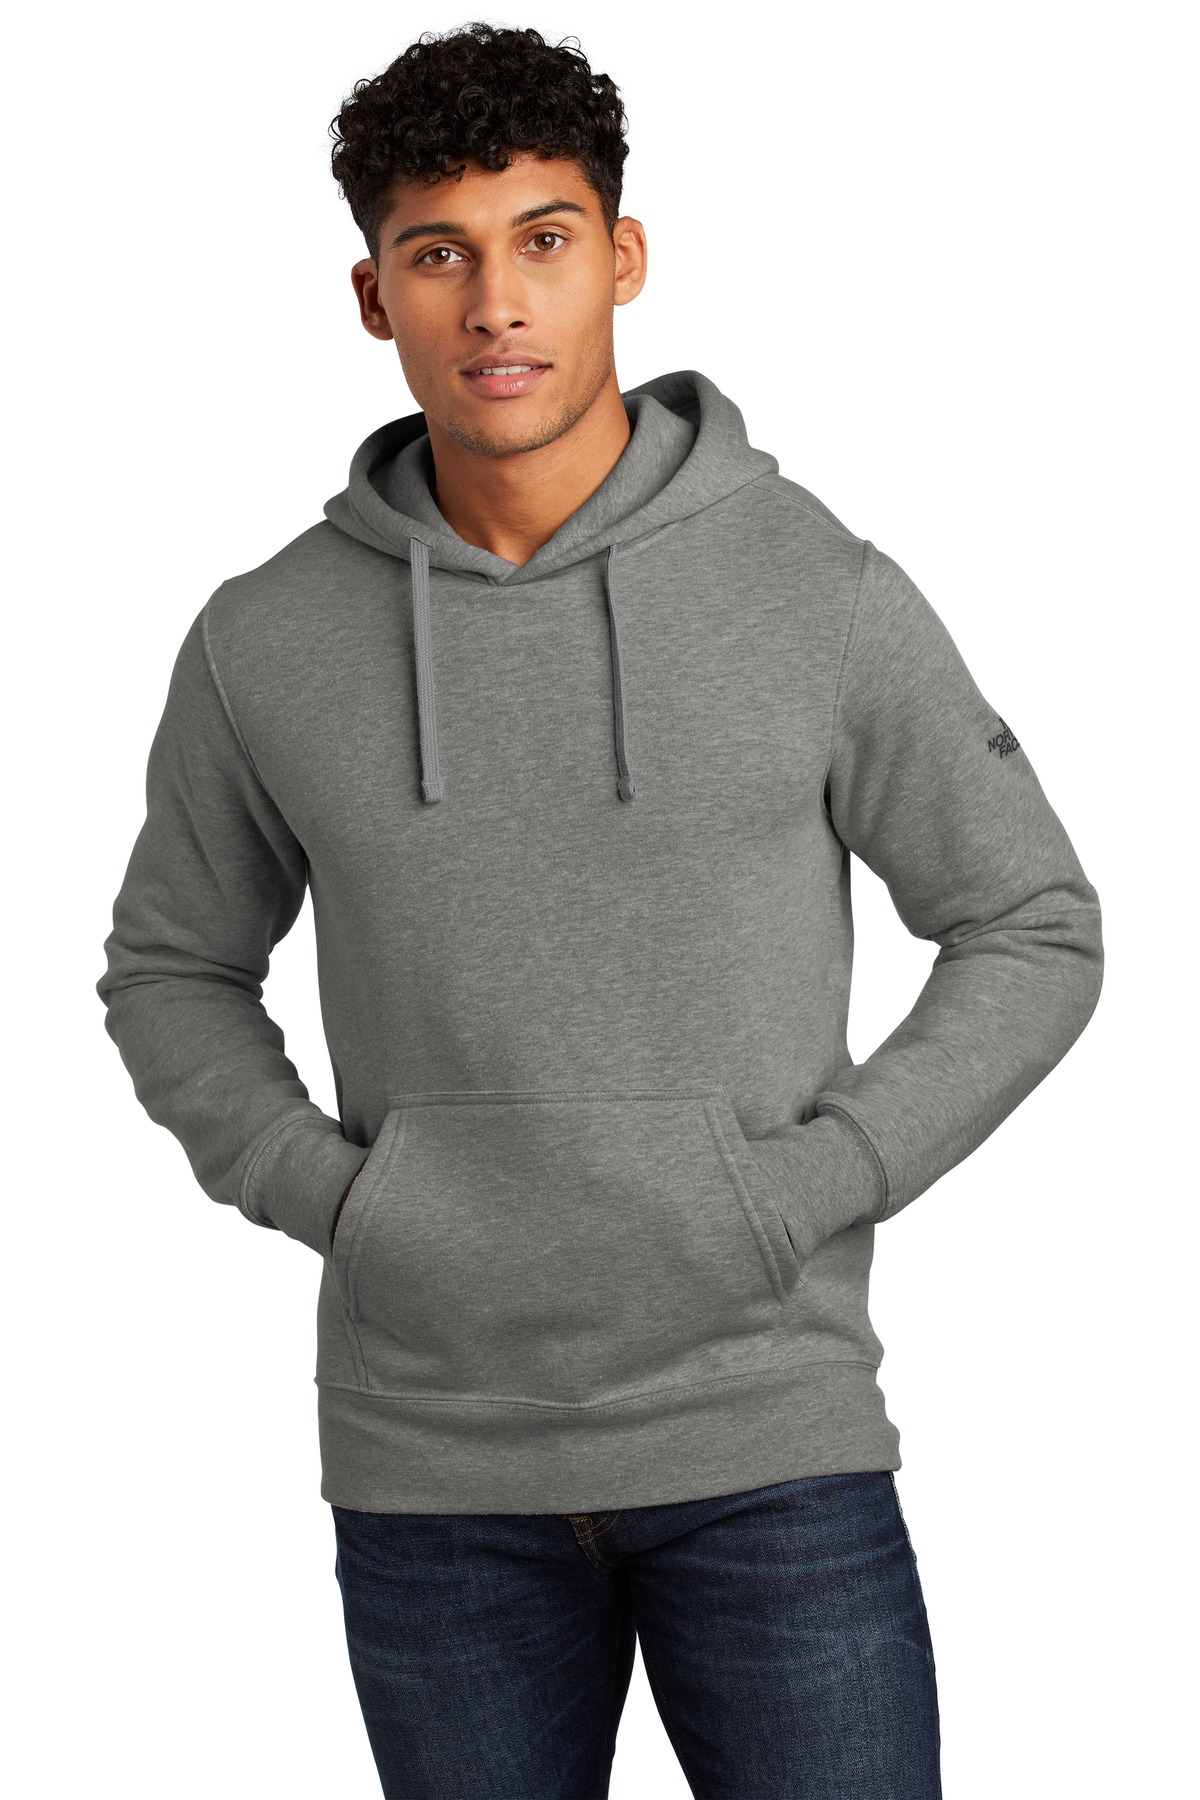 The North Face  ®  Pullover Hoodie NF0A47FF - TNF Medium Grey Heather